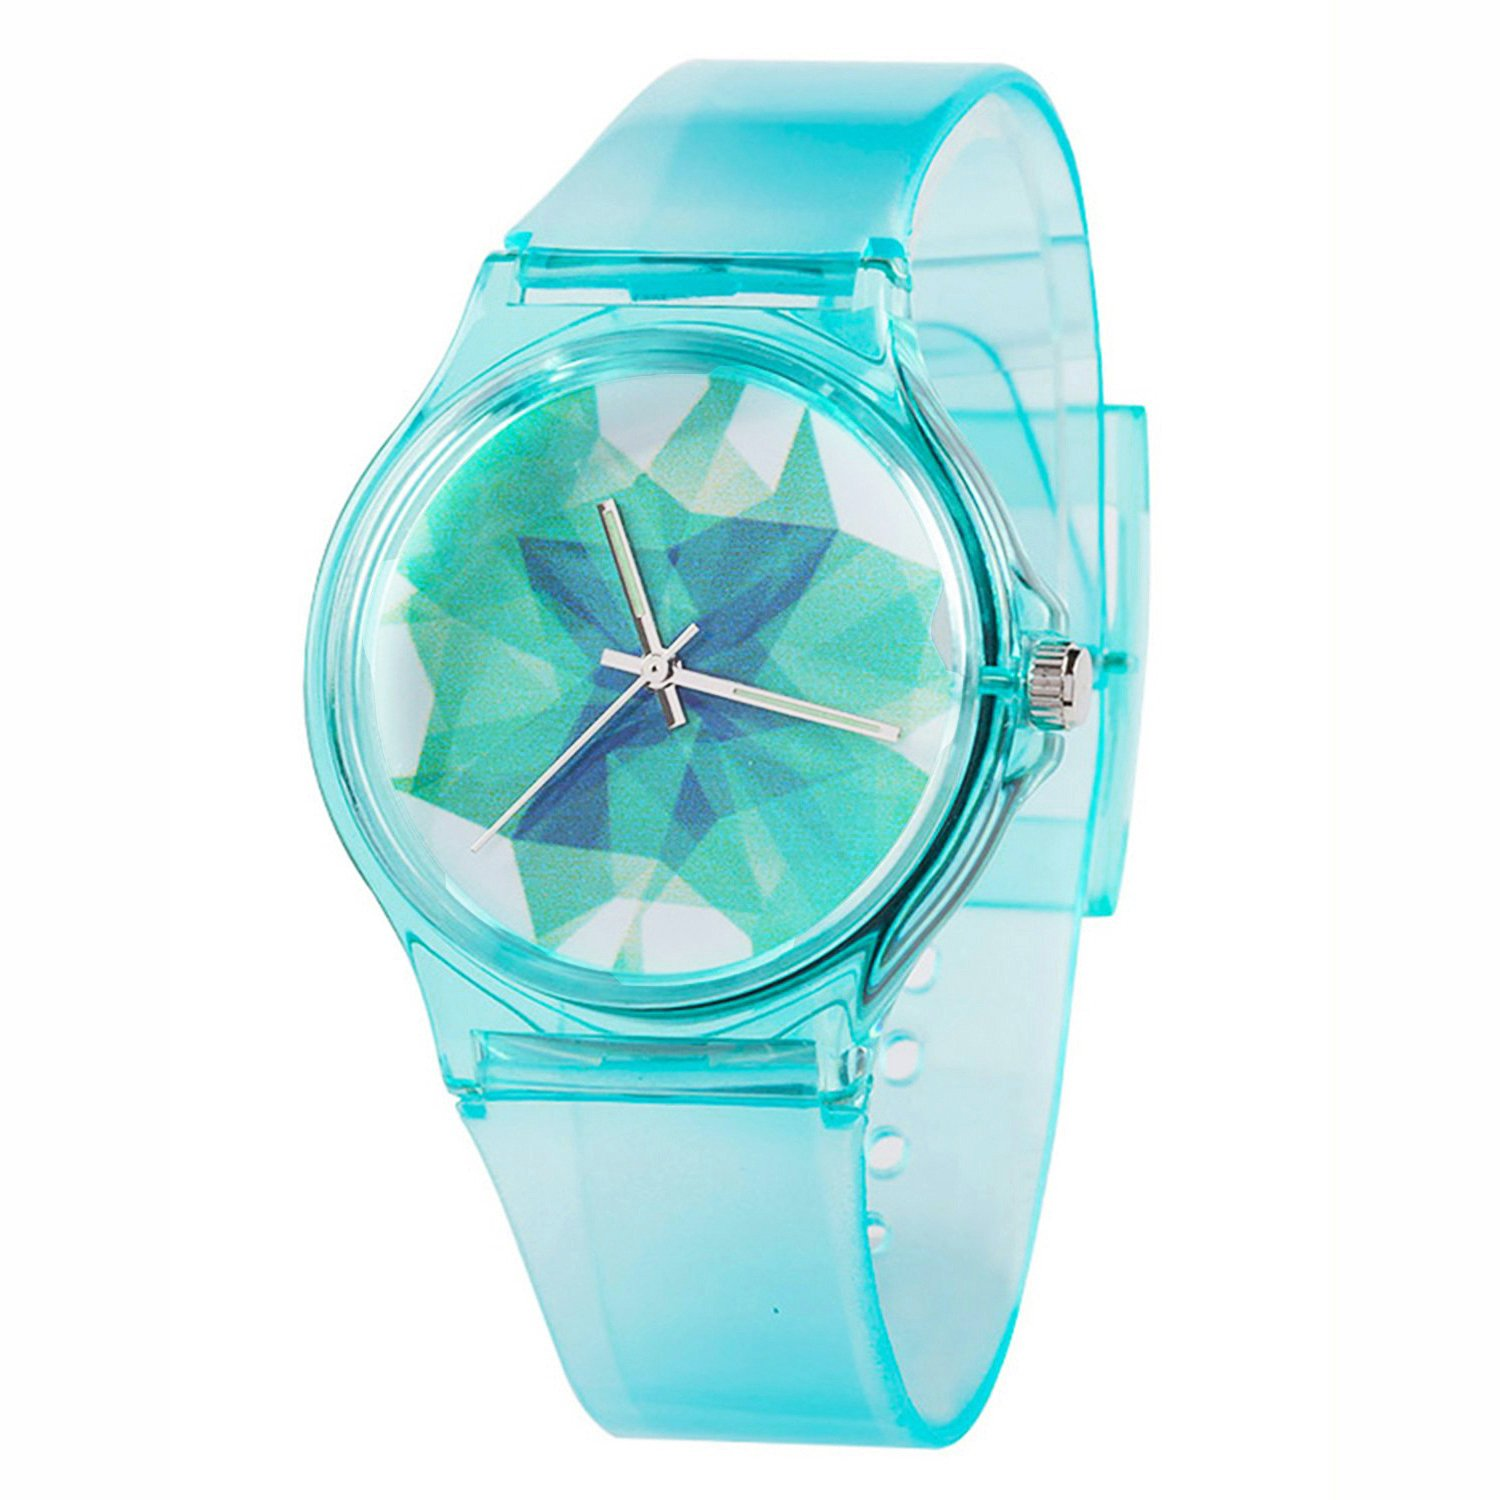 Kids Boys Girls Watches,Resin Super Soft Band Student Age 11-15 7-10 Wristwatches for Teenagers Young Girls Boys Nebula Starry(Mint Green)